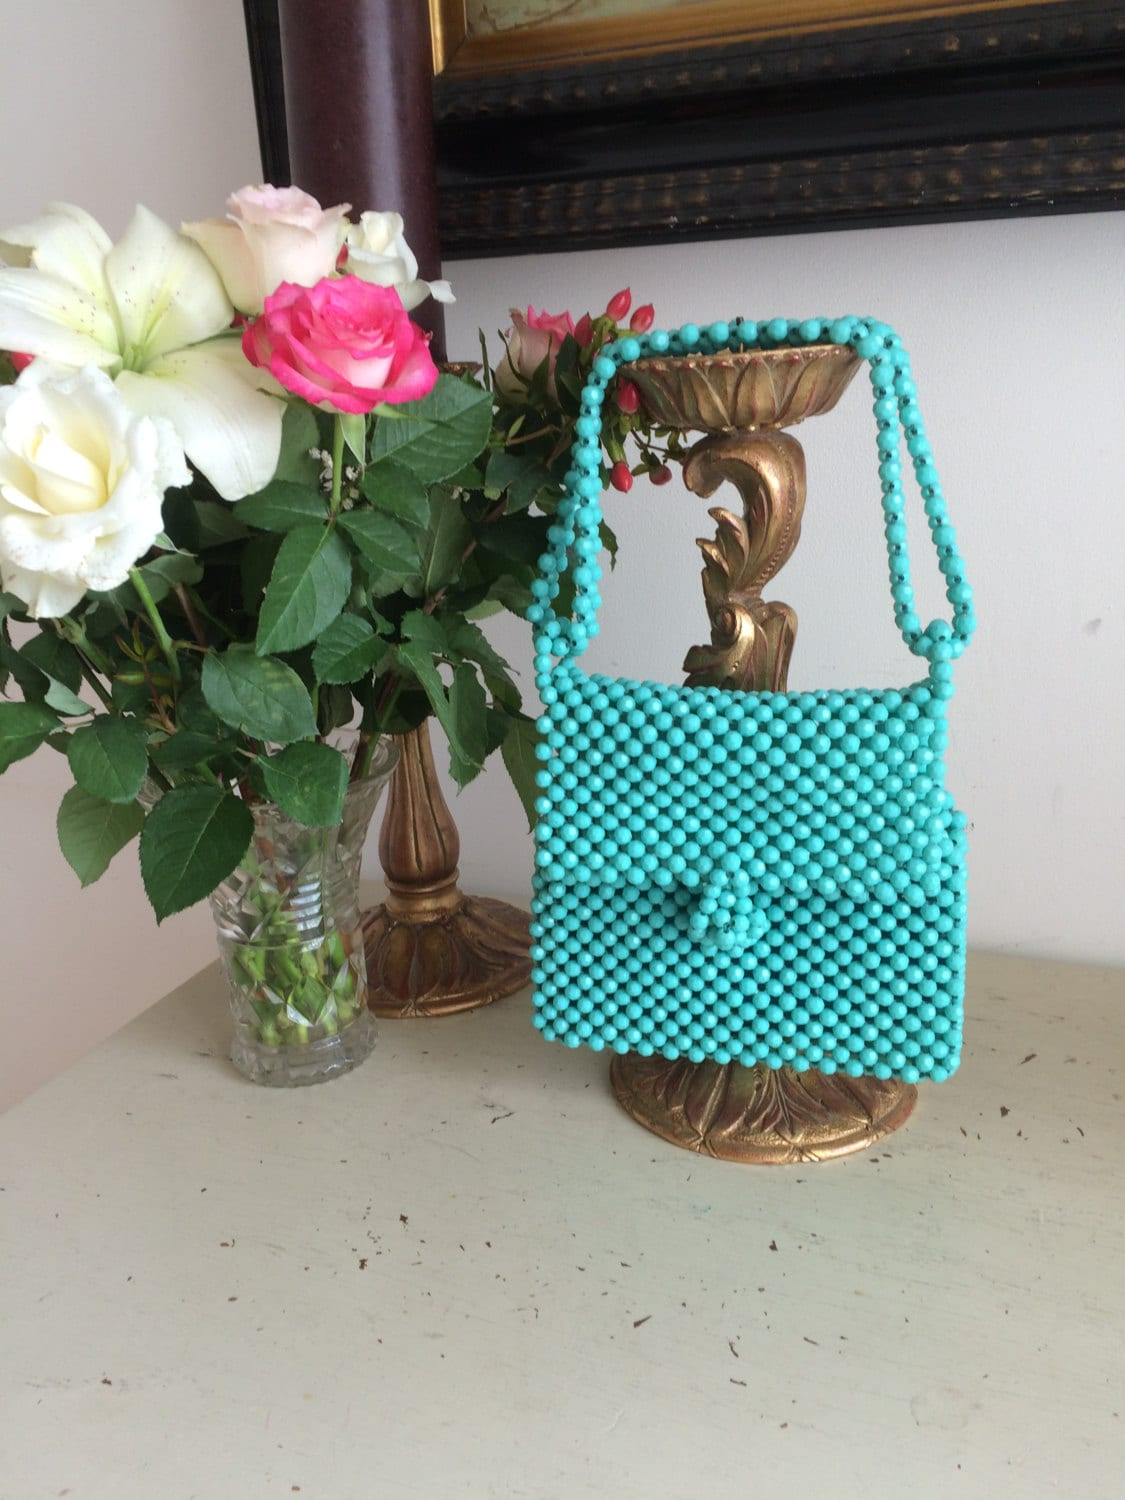 Vintage Mod 1960s Shoulder Bag Handbag 100s of Aqua Beads Hand Made Gift Retro Ramsgate